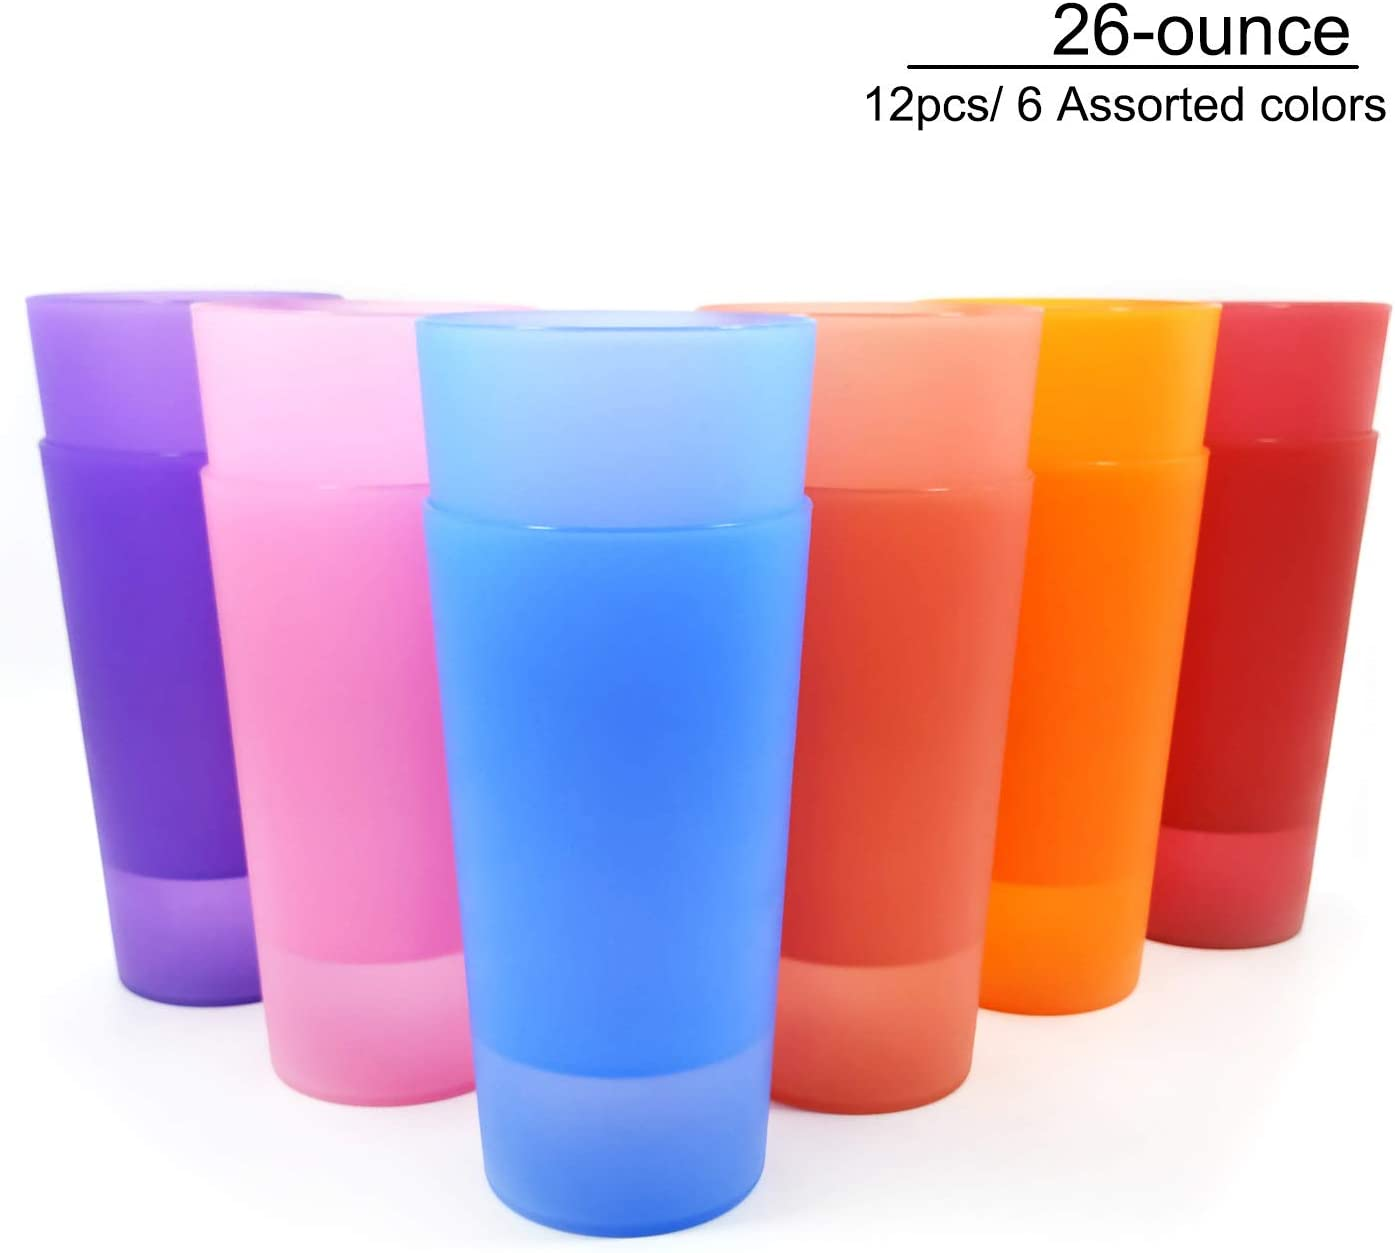 Unbreakable 26-ounce Plastic Tumbler Drinking Glasses, Set of 12 Multicolor, Bright Color- Dishwasher safe, BPA Free